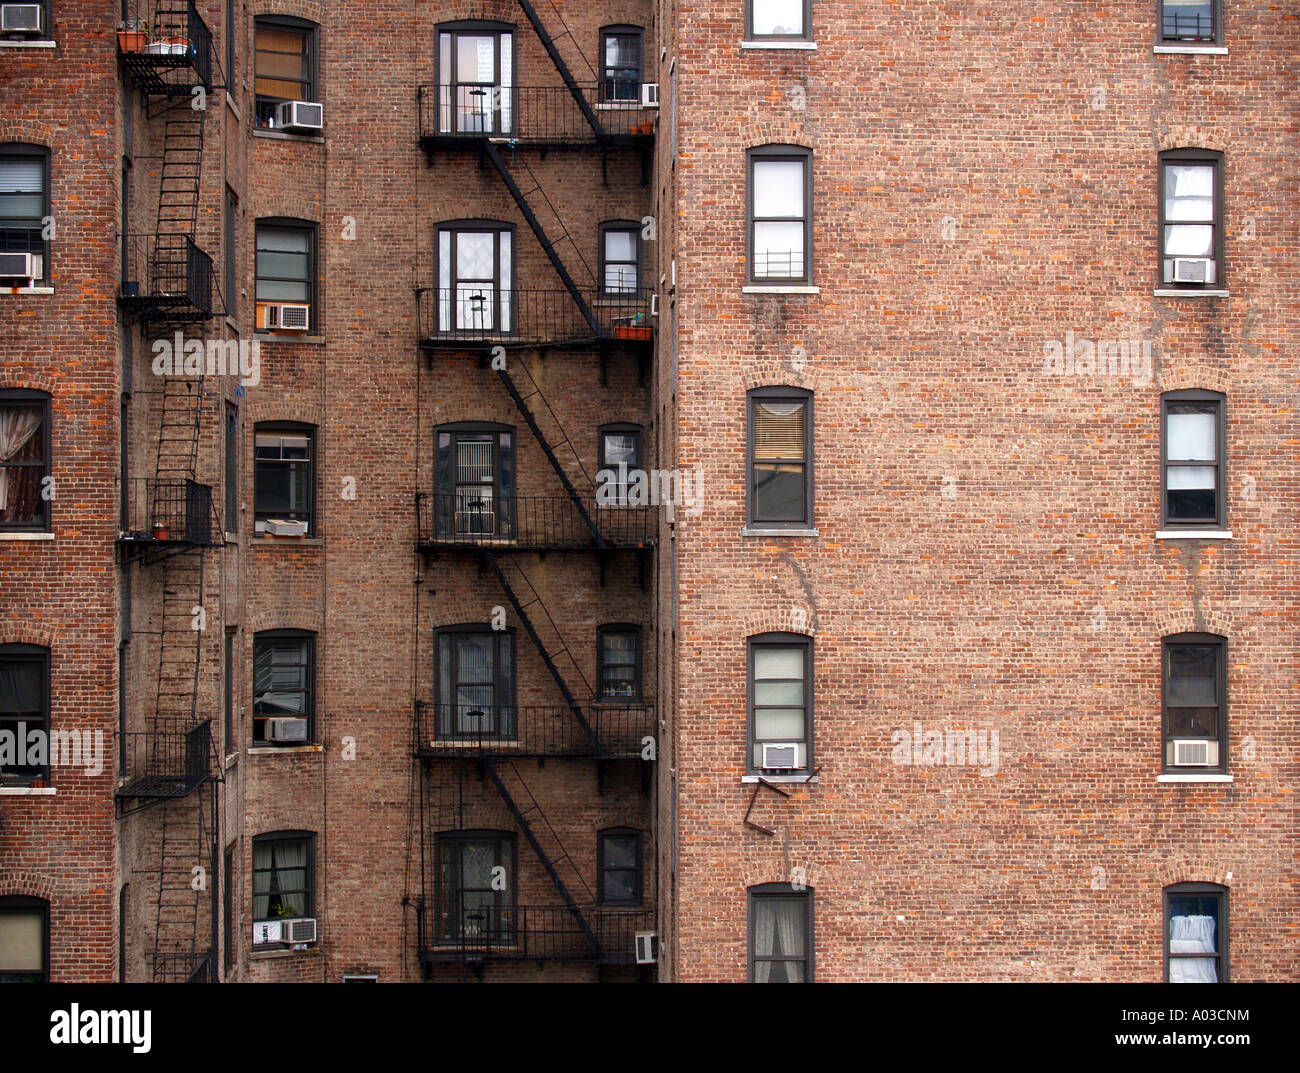 Brick Walls And Windows On Apartment Buildings In Manhattan New York City